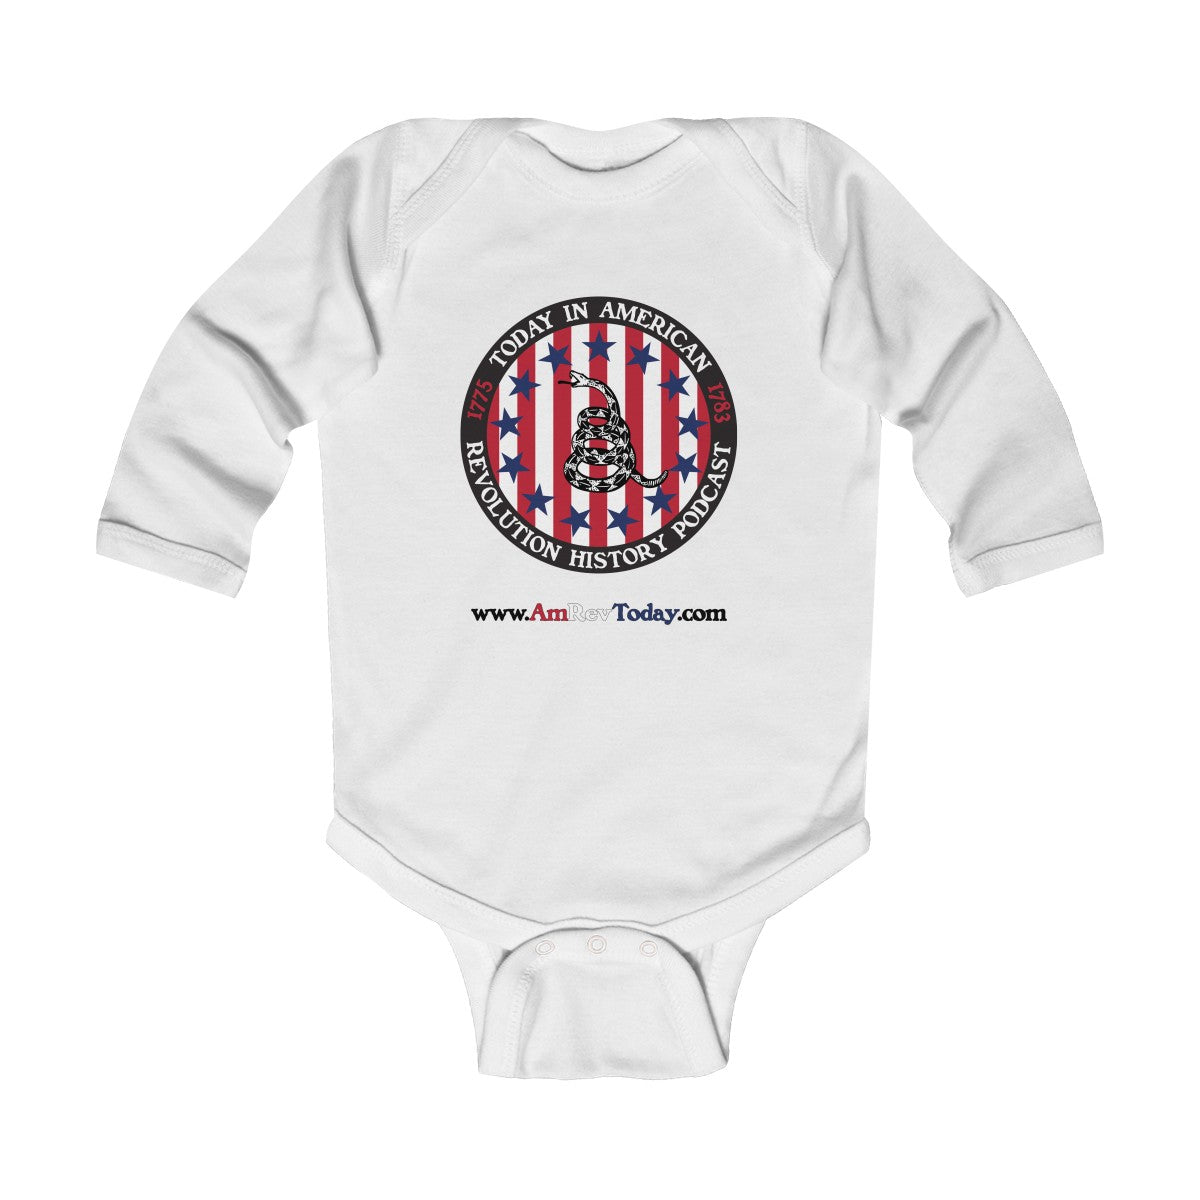 Today in American Revolution History Podcast Infant Long Sleeve Bodysuit